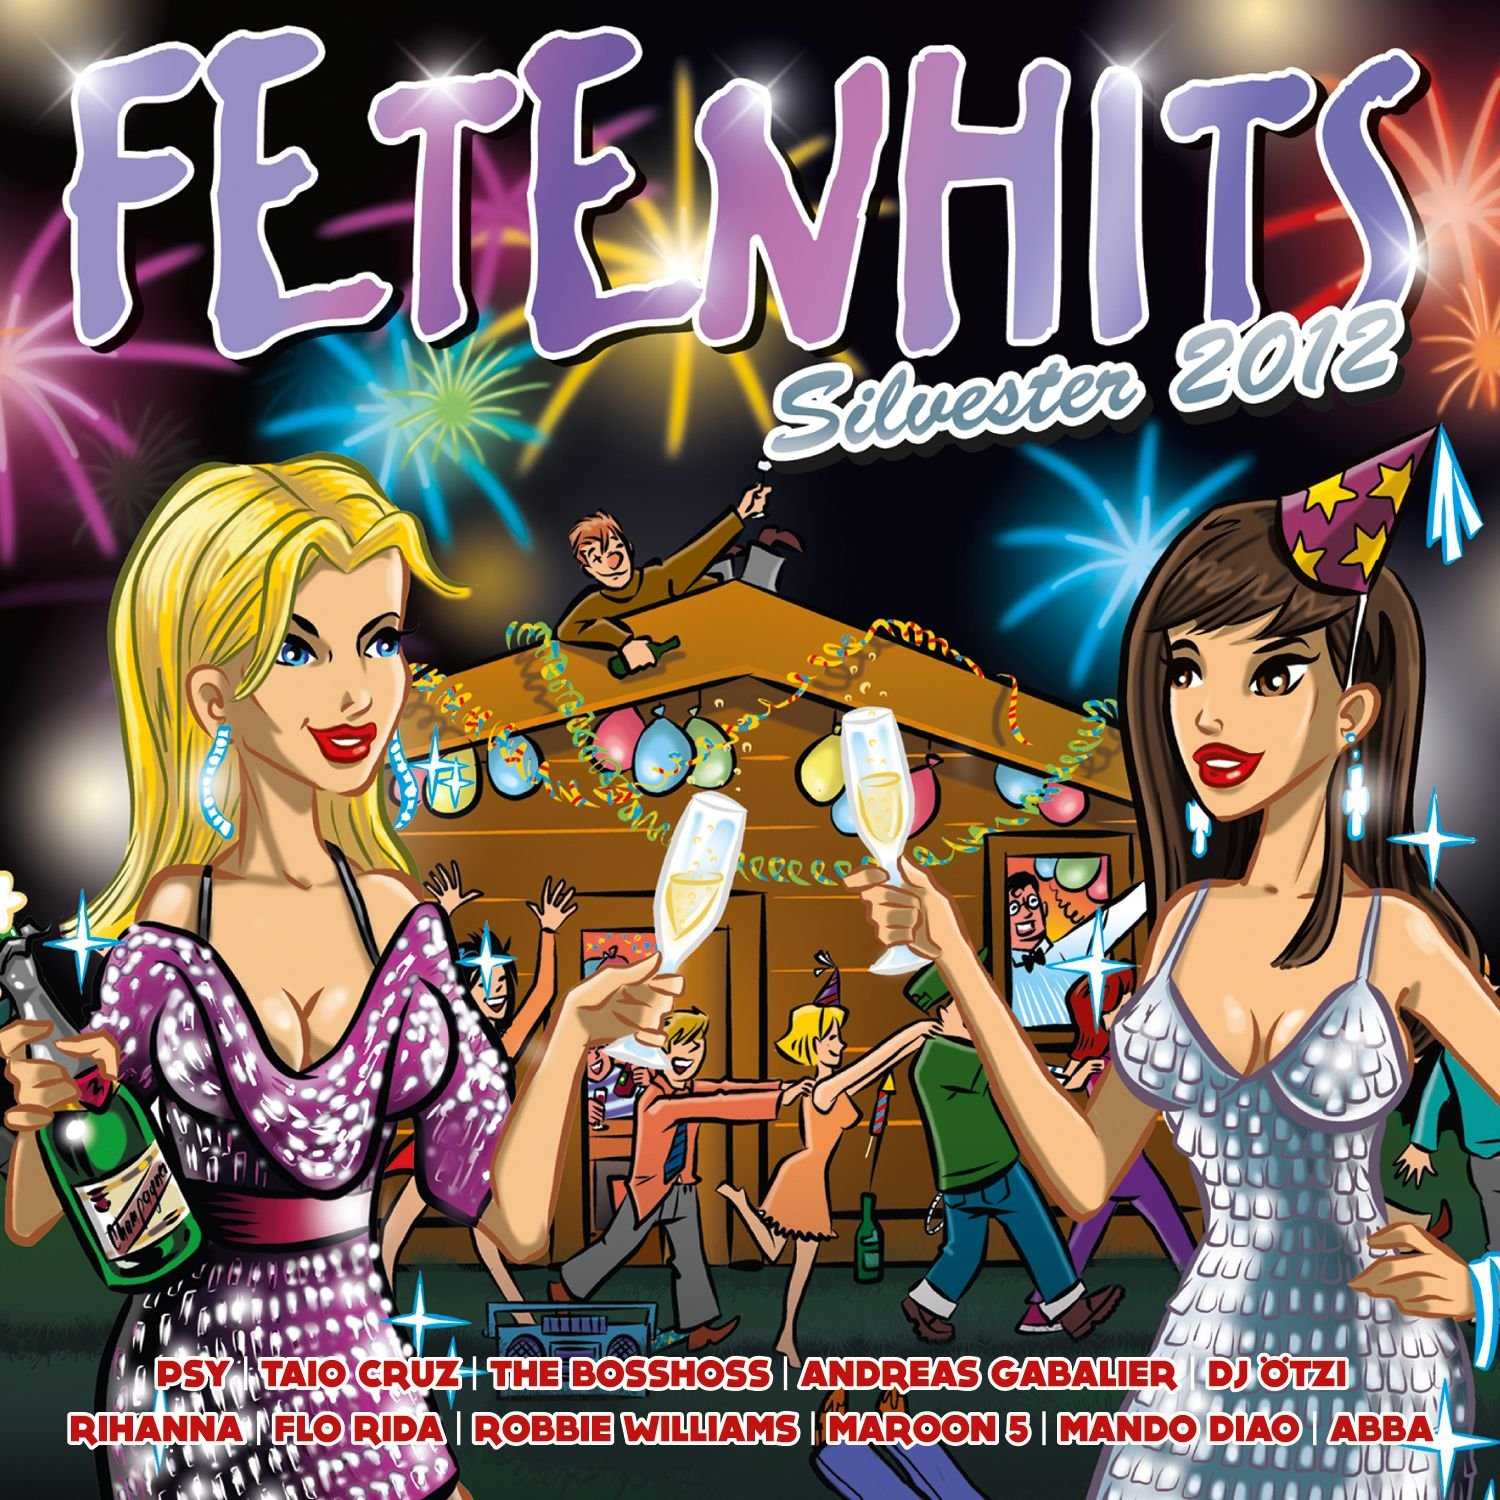 VA-Fetenhits Silvester 2012-3CD-FLAC-2012-NBFLAC Download